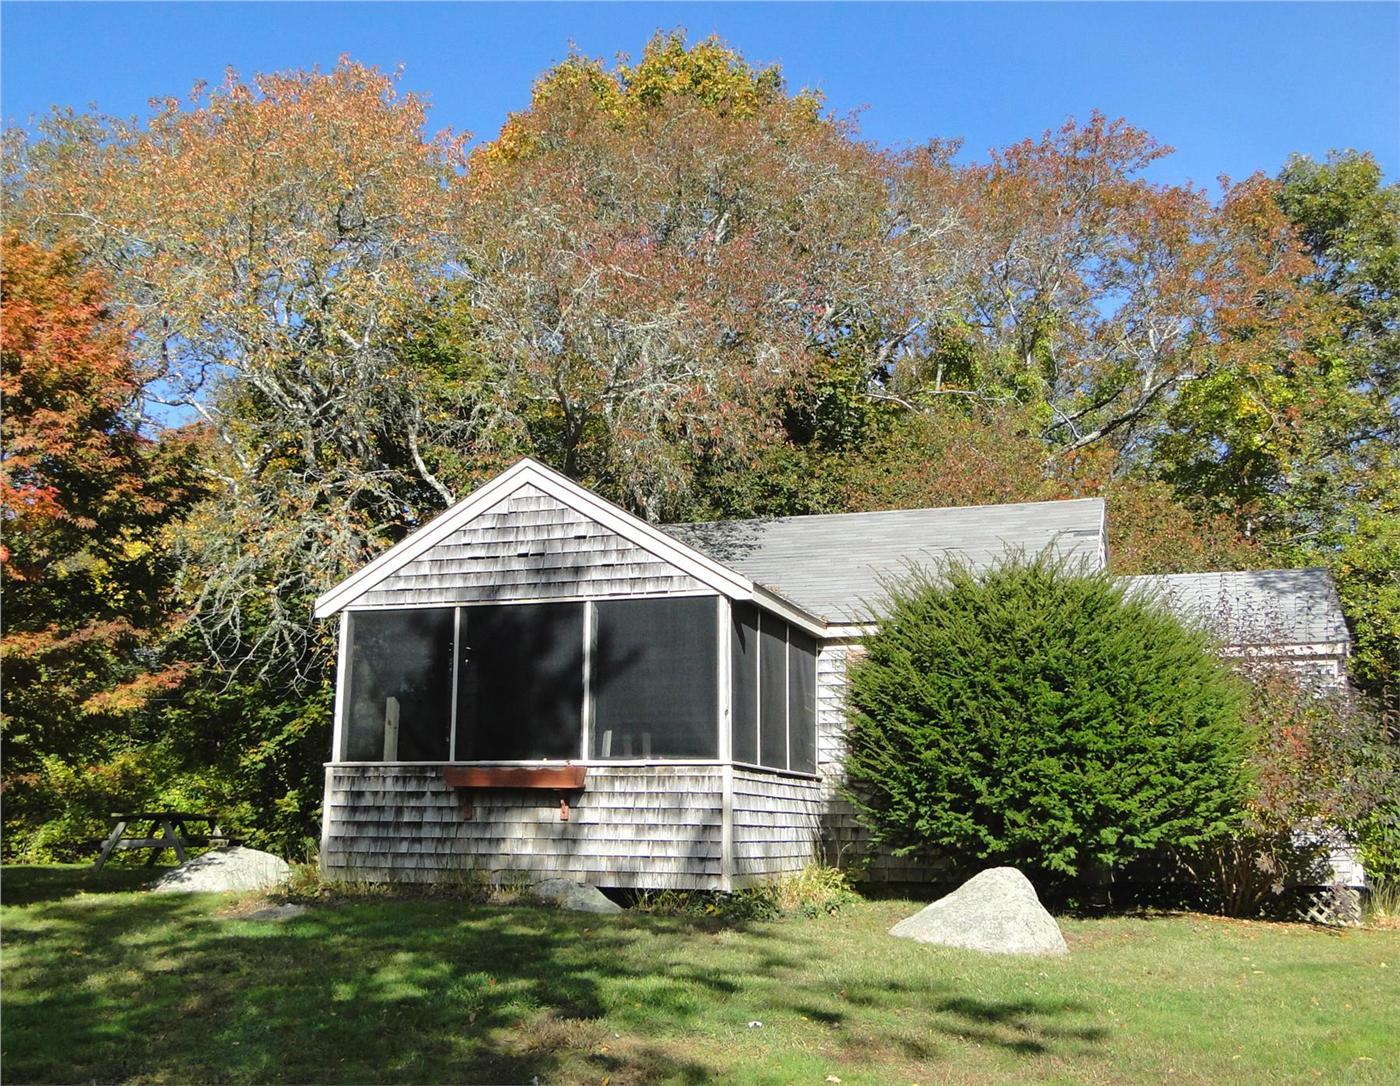 bluffs rentals real cottage estate barnstable paul robert hyannis harbor ma road